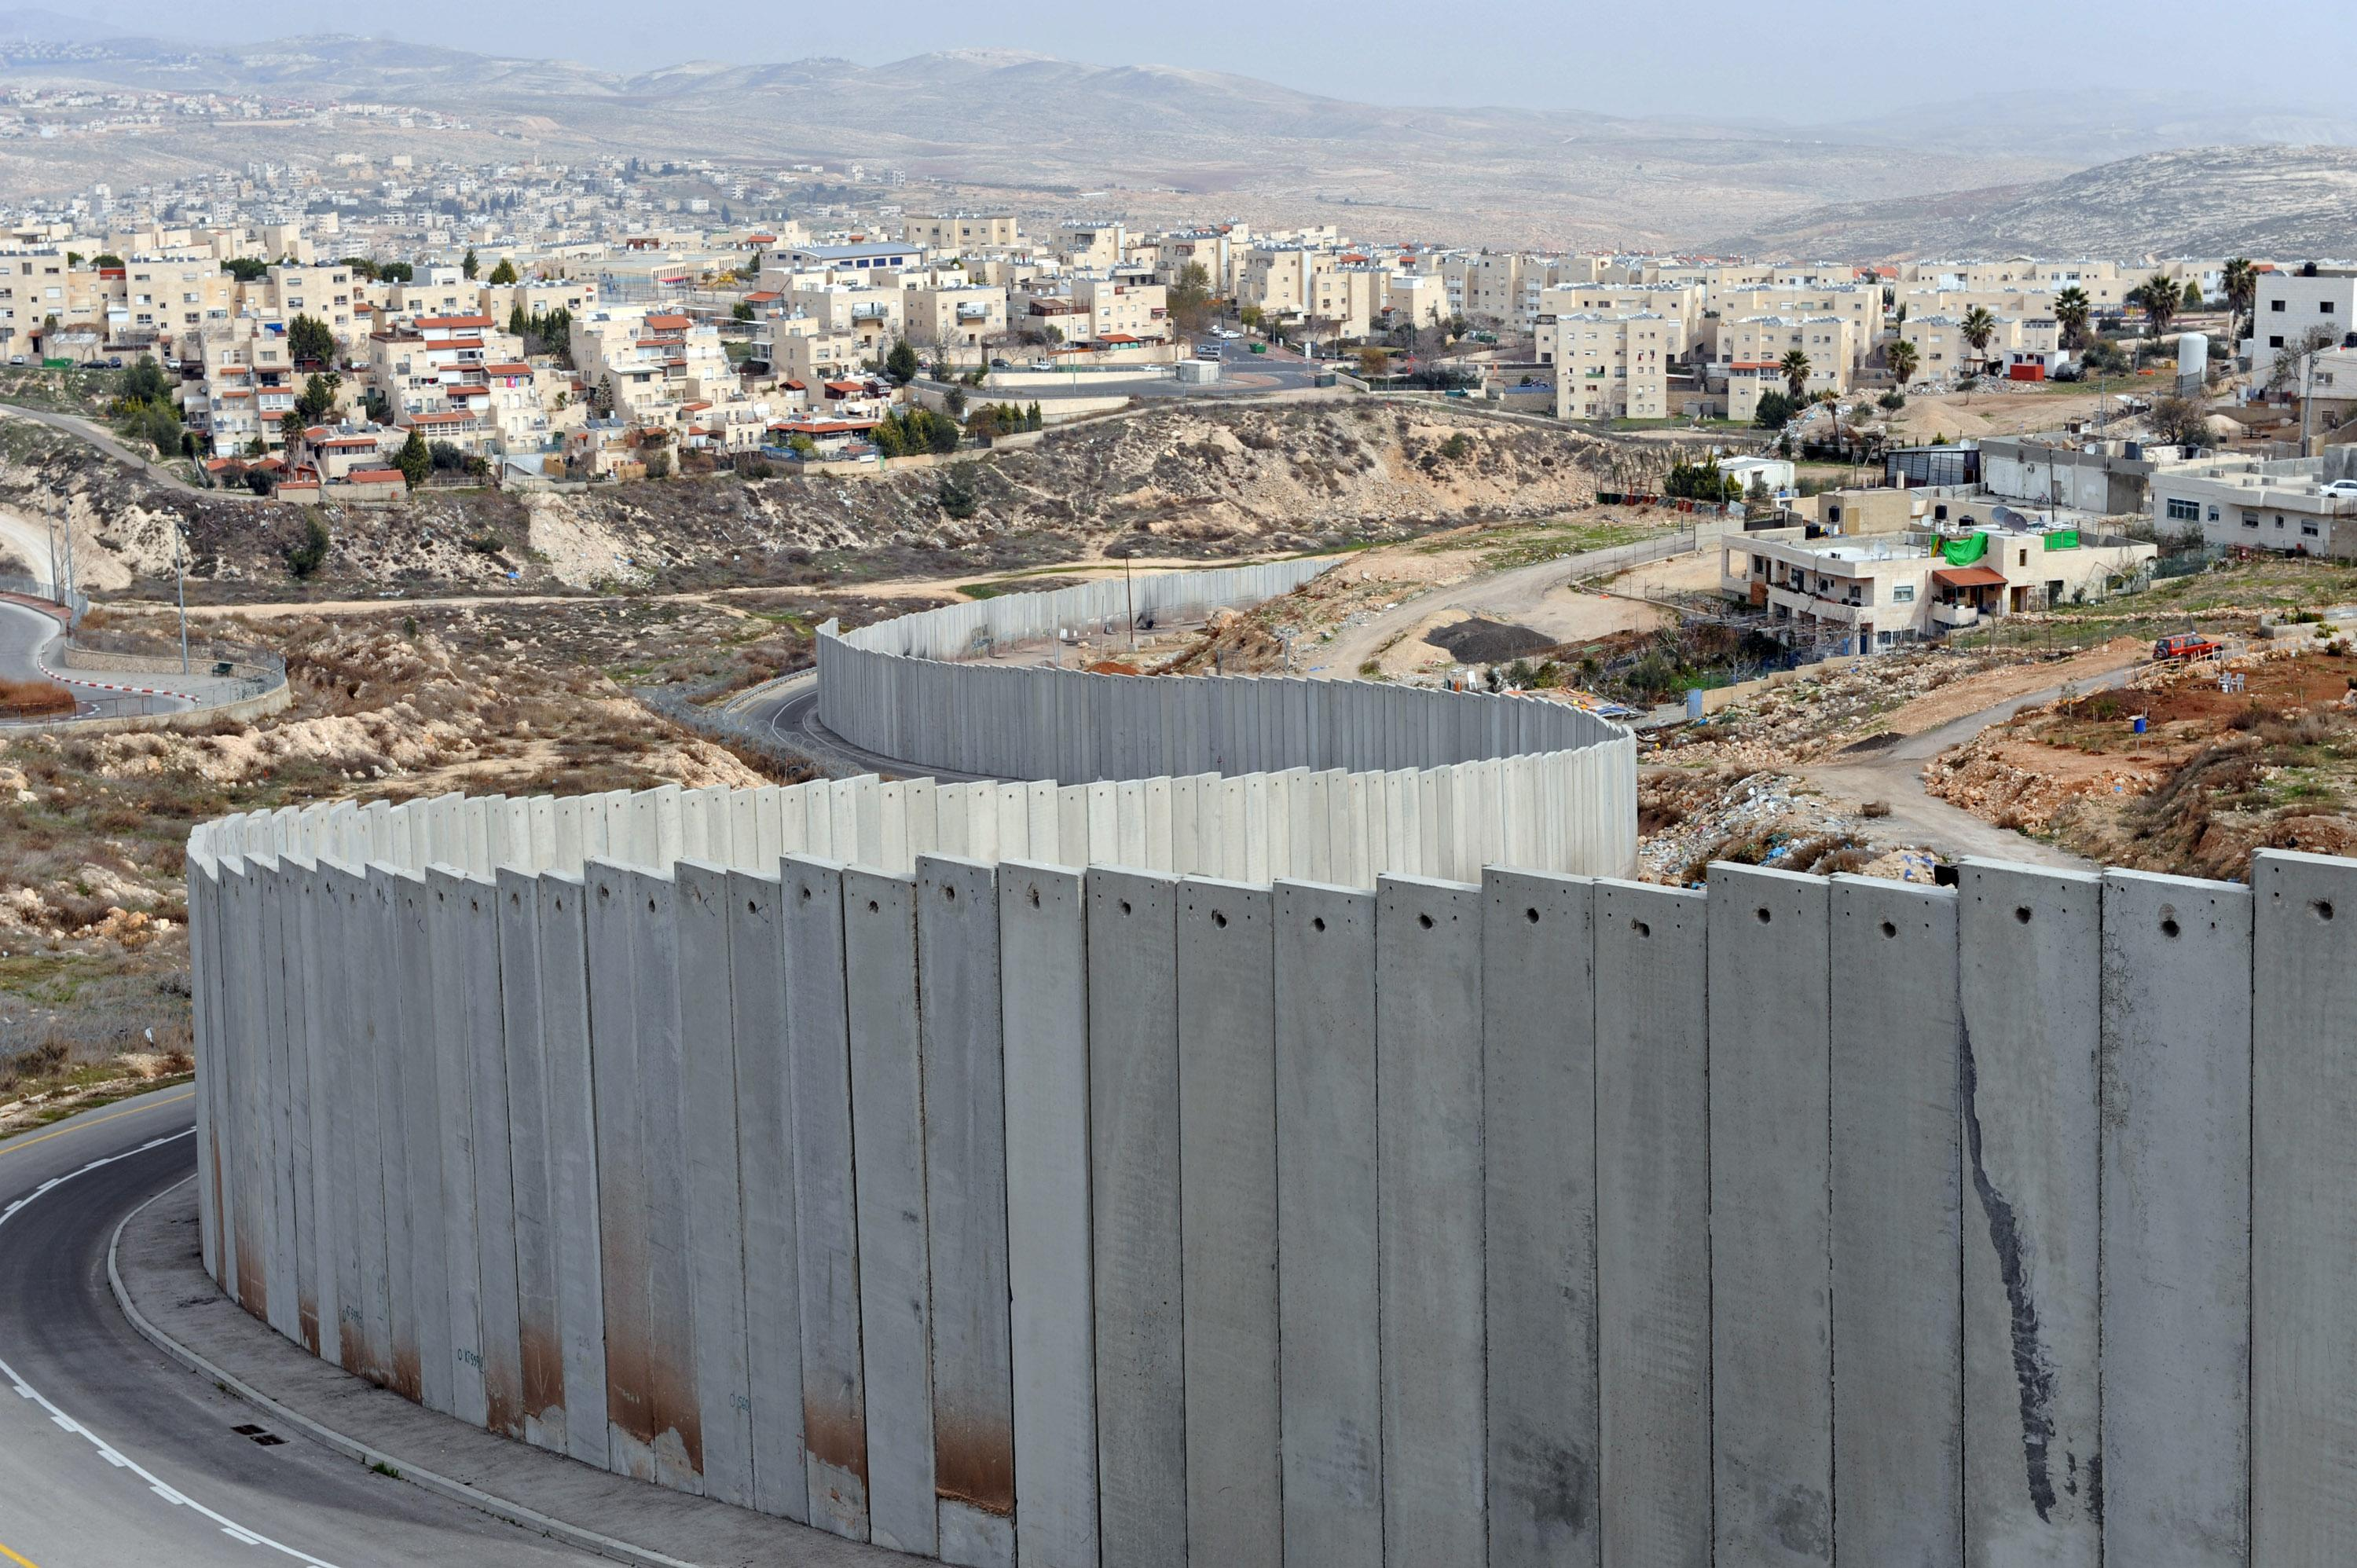 apartheid-wall.jpg